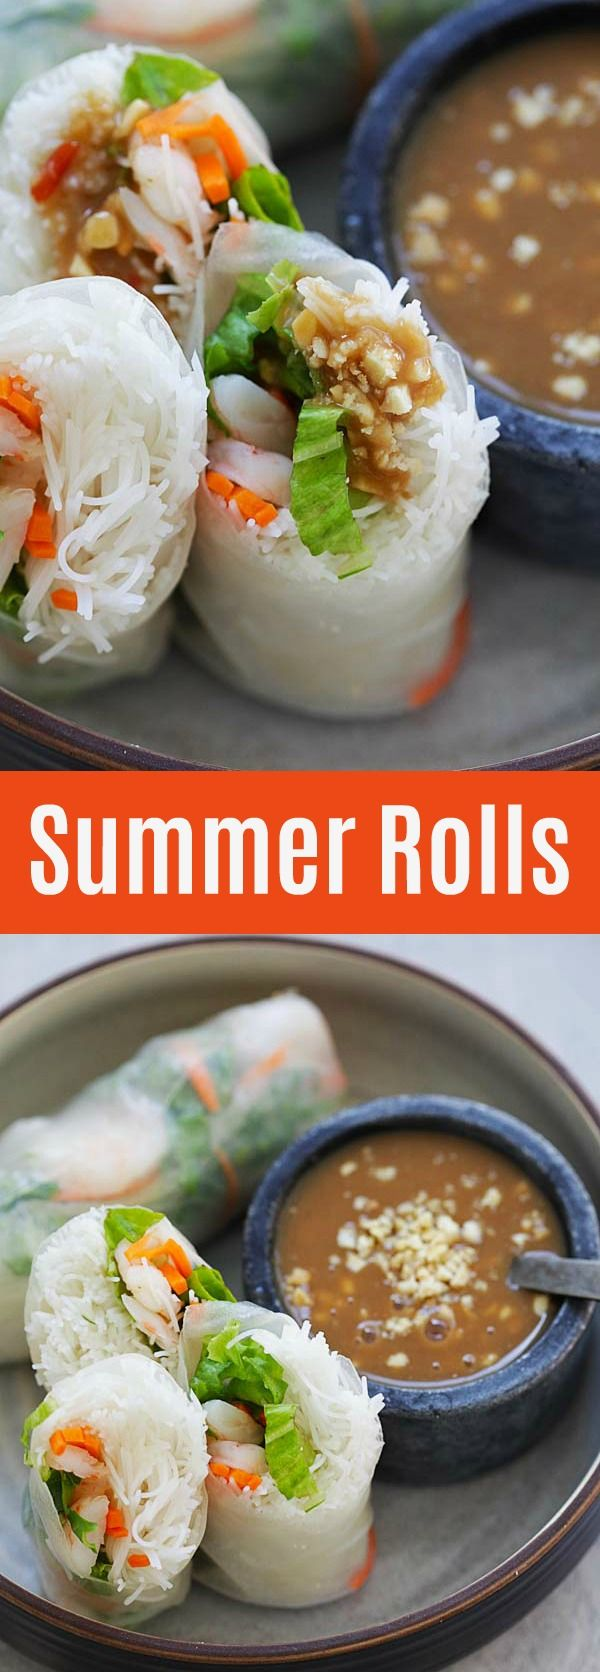 Easy Summer Rolls – healthy and delicious Vietnamese Summer Rolls made with Annie Chun's Maifun rice noodles, lettuce, carrots, shrimp with hoisin-peanut sauce. So good | rasamalaysia.com